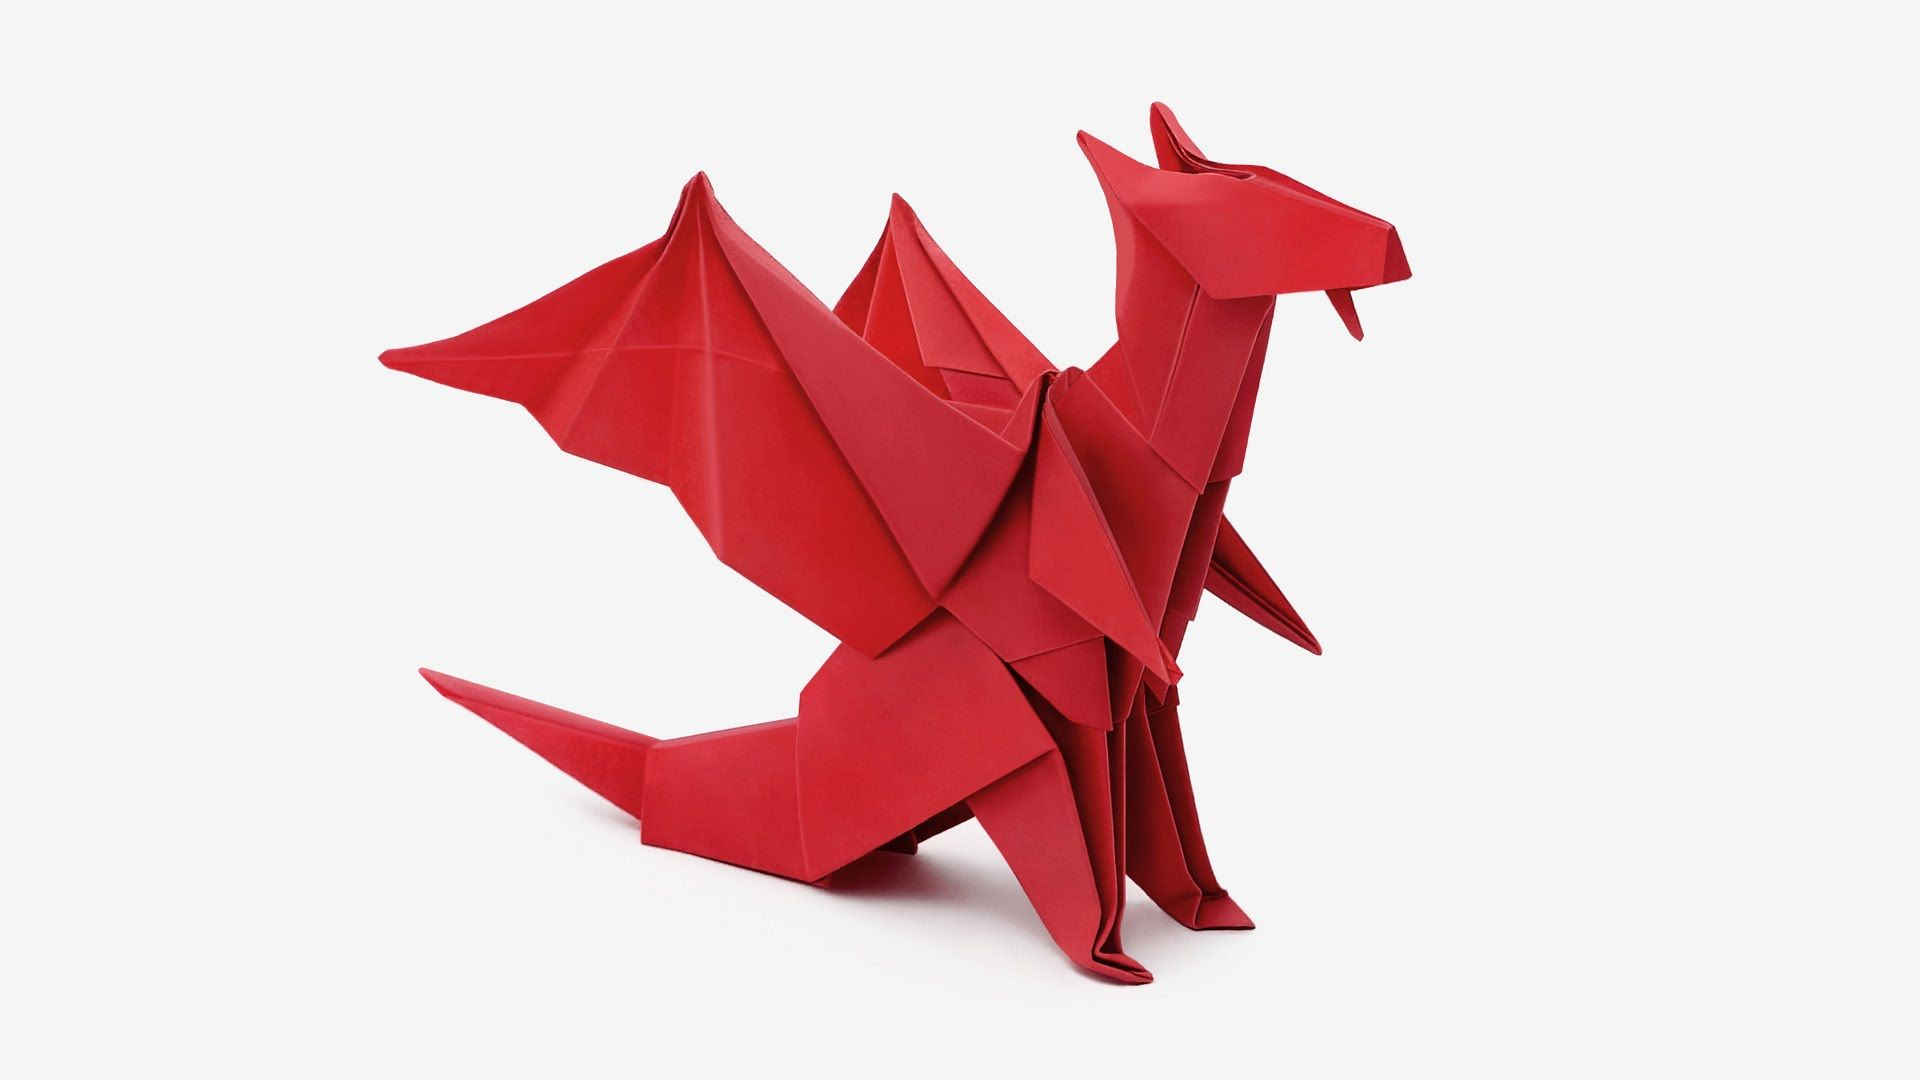 How To Make An Origami Dragon Designed By Jo Nakashima 20 Fev 2015 Difficulty Level Low Intermediate My Paper Red Tissue Foi Origami 3d Origami Ejderhalar